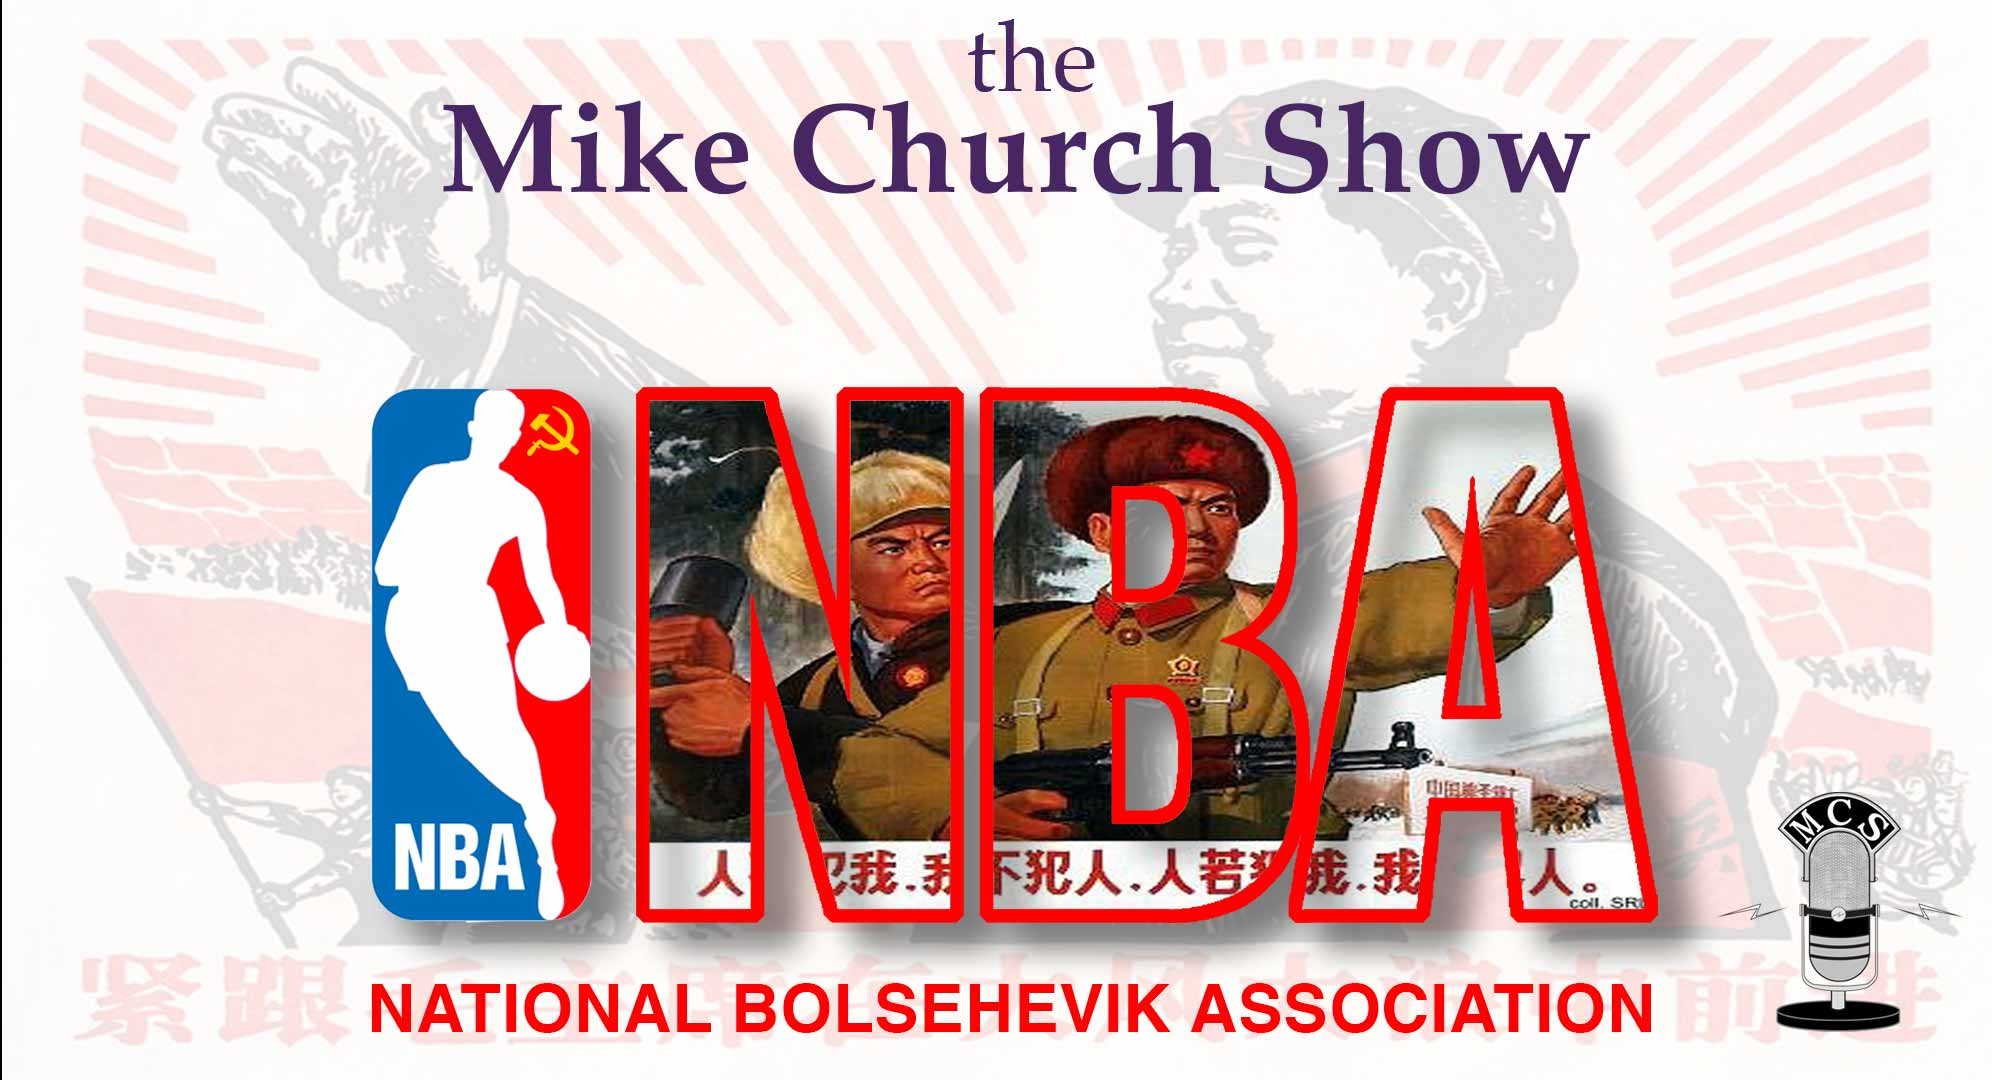 The National Bolshevik Association (NBA)